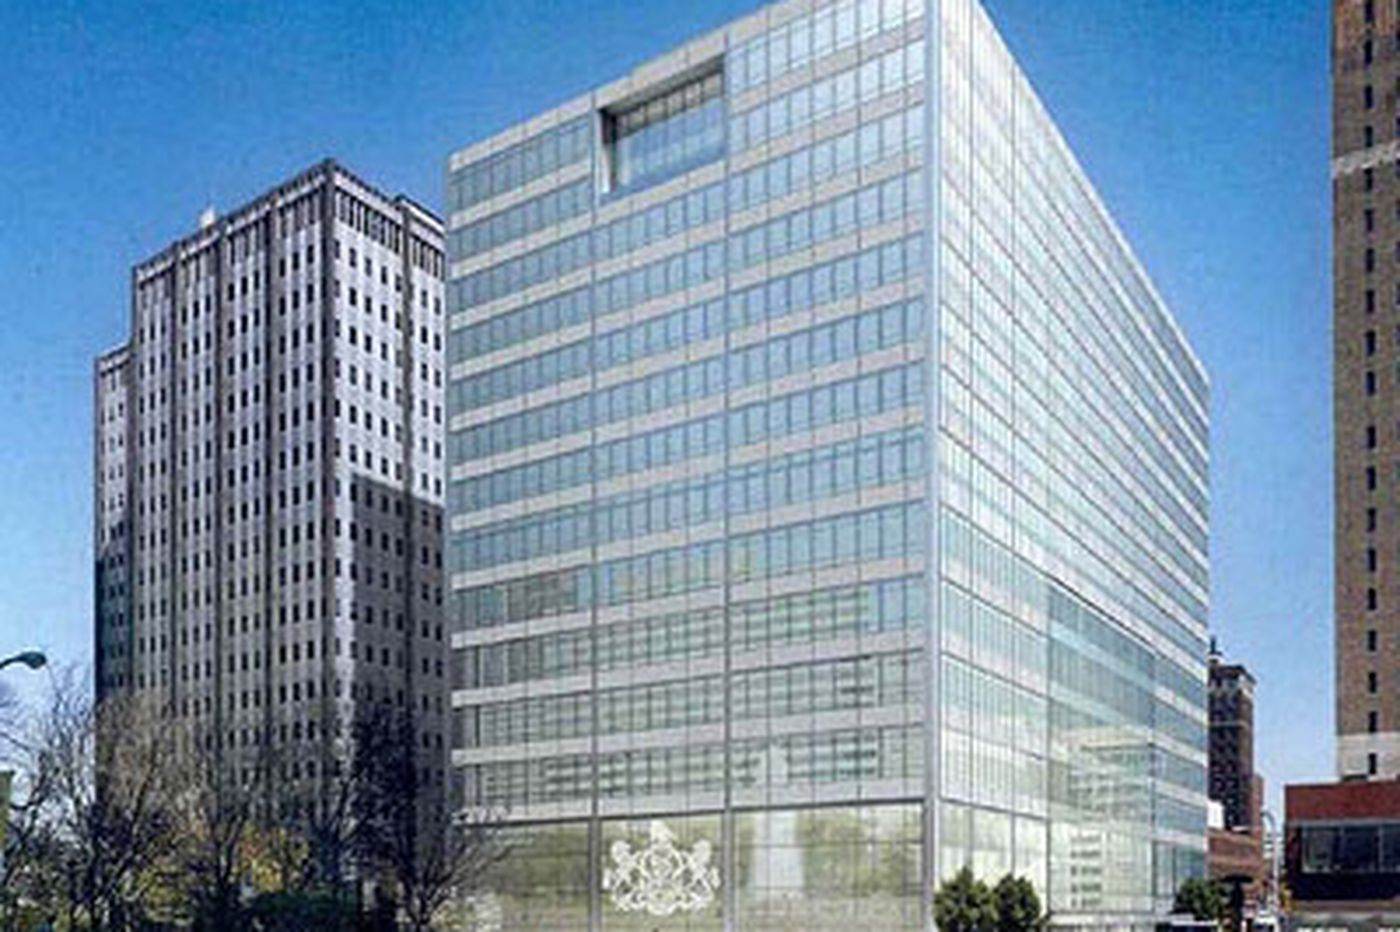 Changing Skyline: In Family Court project, only justice was blind